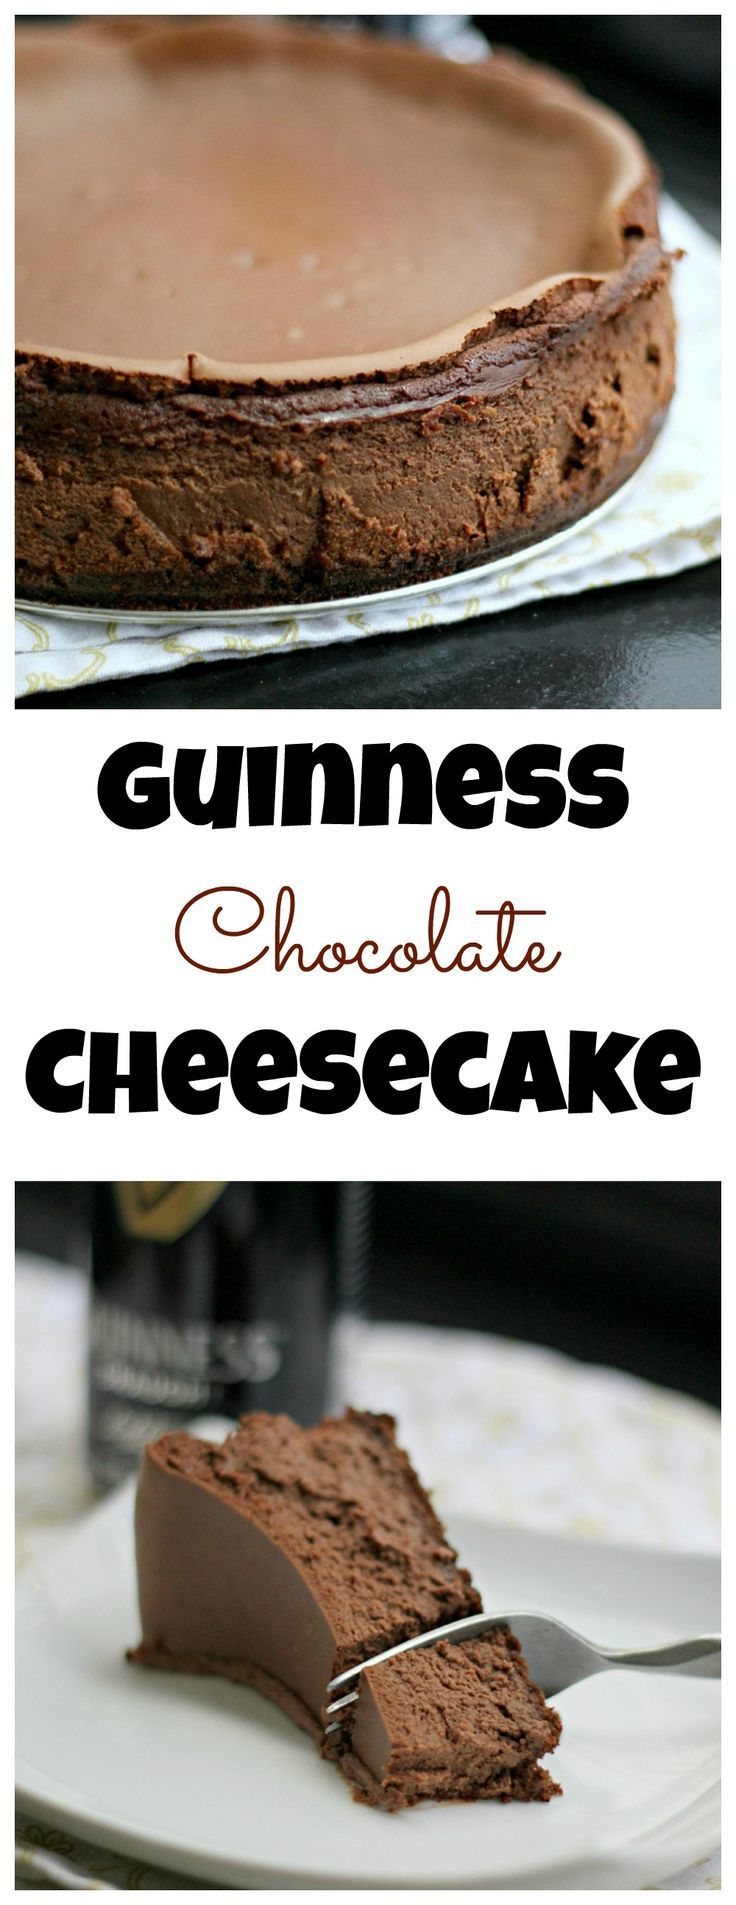 Guinness Chocolate Cheesecake - A rich chocolate cheesecake made even better by the addition of Guinness! Perfect for St. Patrick's Day.